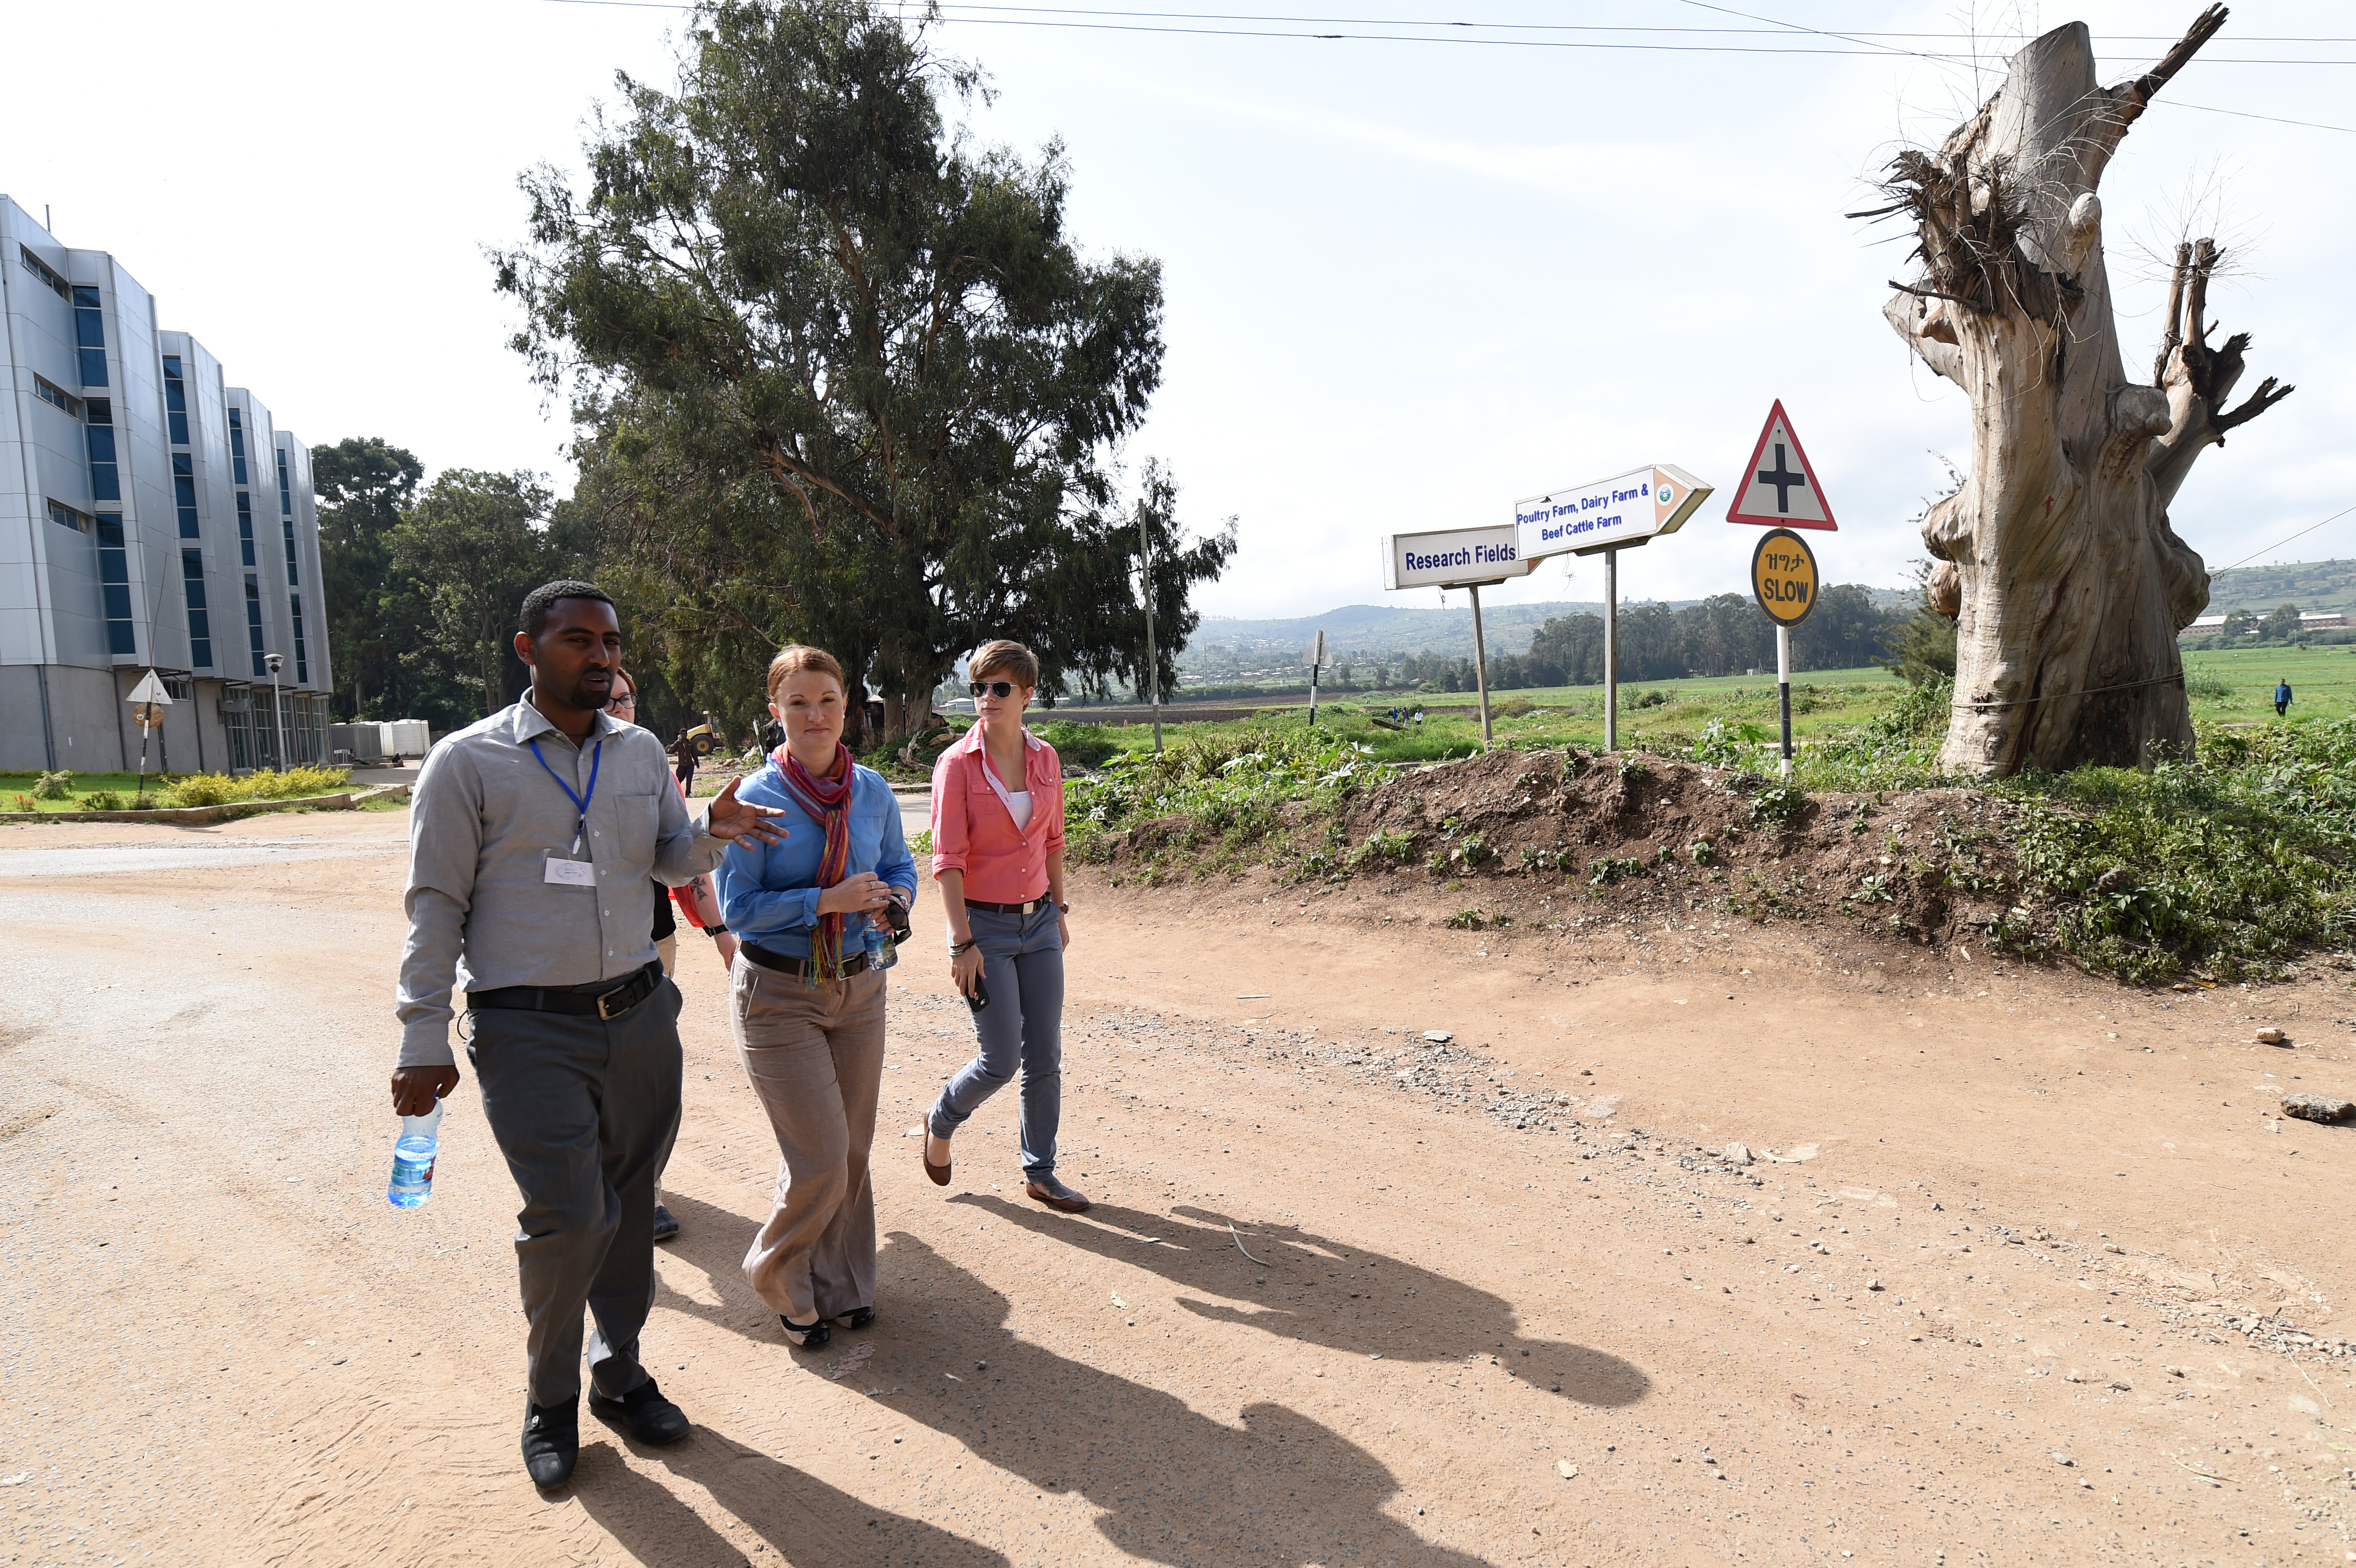 Hailemariam Kefyalew, left, Haramaya University College of Veterinary Medicine assistant professor gives a campus tour to U.S. Army 404th Civil Affairs Battalion Capt. Jodi Collins, veterinarian and Sgt. Stephanie Taylor, left, veterinary technician, in Dire Dawa, Ethiopia, June 19, 2015. The CA team, assigned to Combined Joint Task Force- Horn of Africa, was invited to attend the Third International Veterinary Education Conference. Established in 2003, CVM houses dairy, beef, poultry, swine, sheep and goat farms for demonstrations and research purposes. (U.S. Air Force photo by. Senior Airman Nesha Humes)